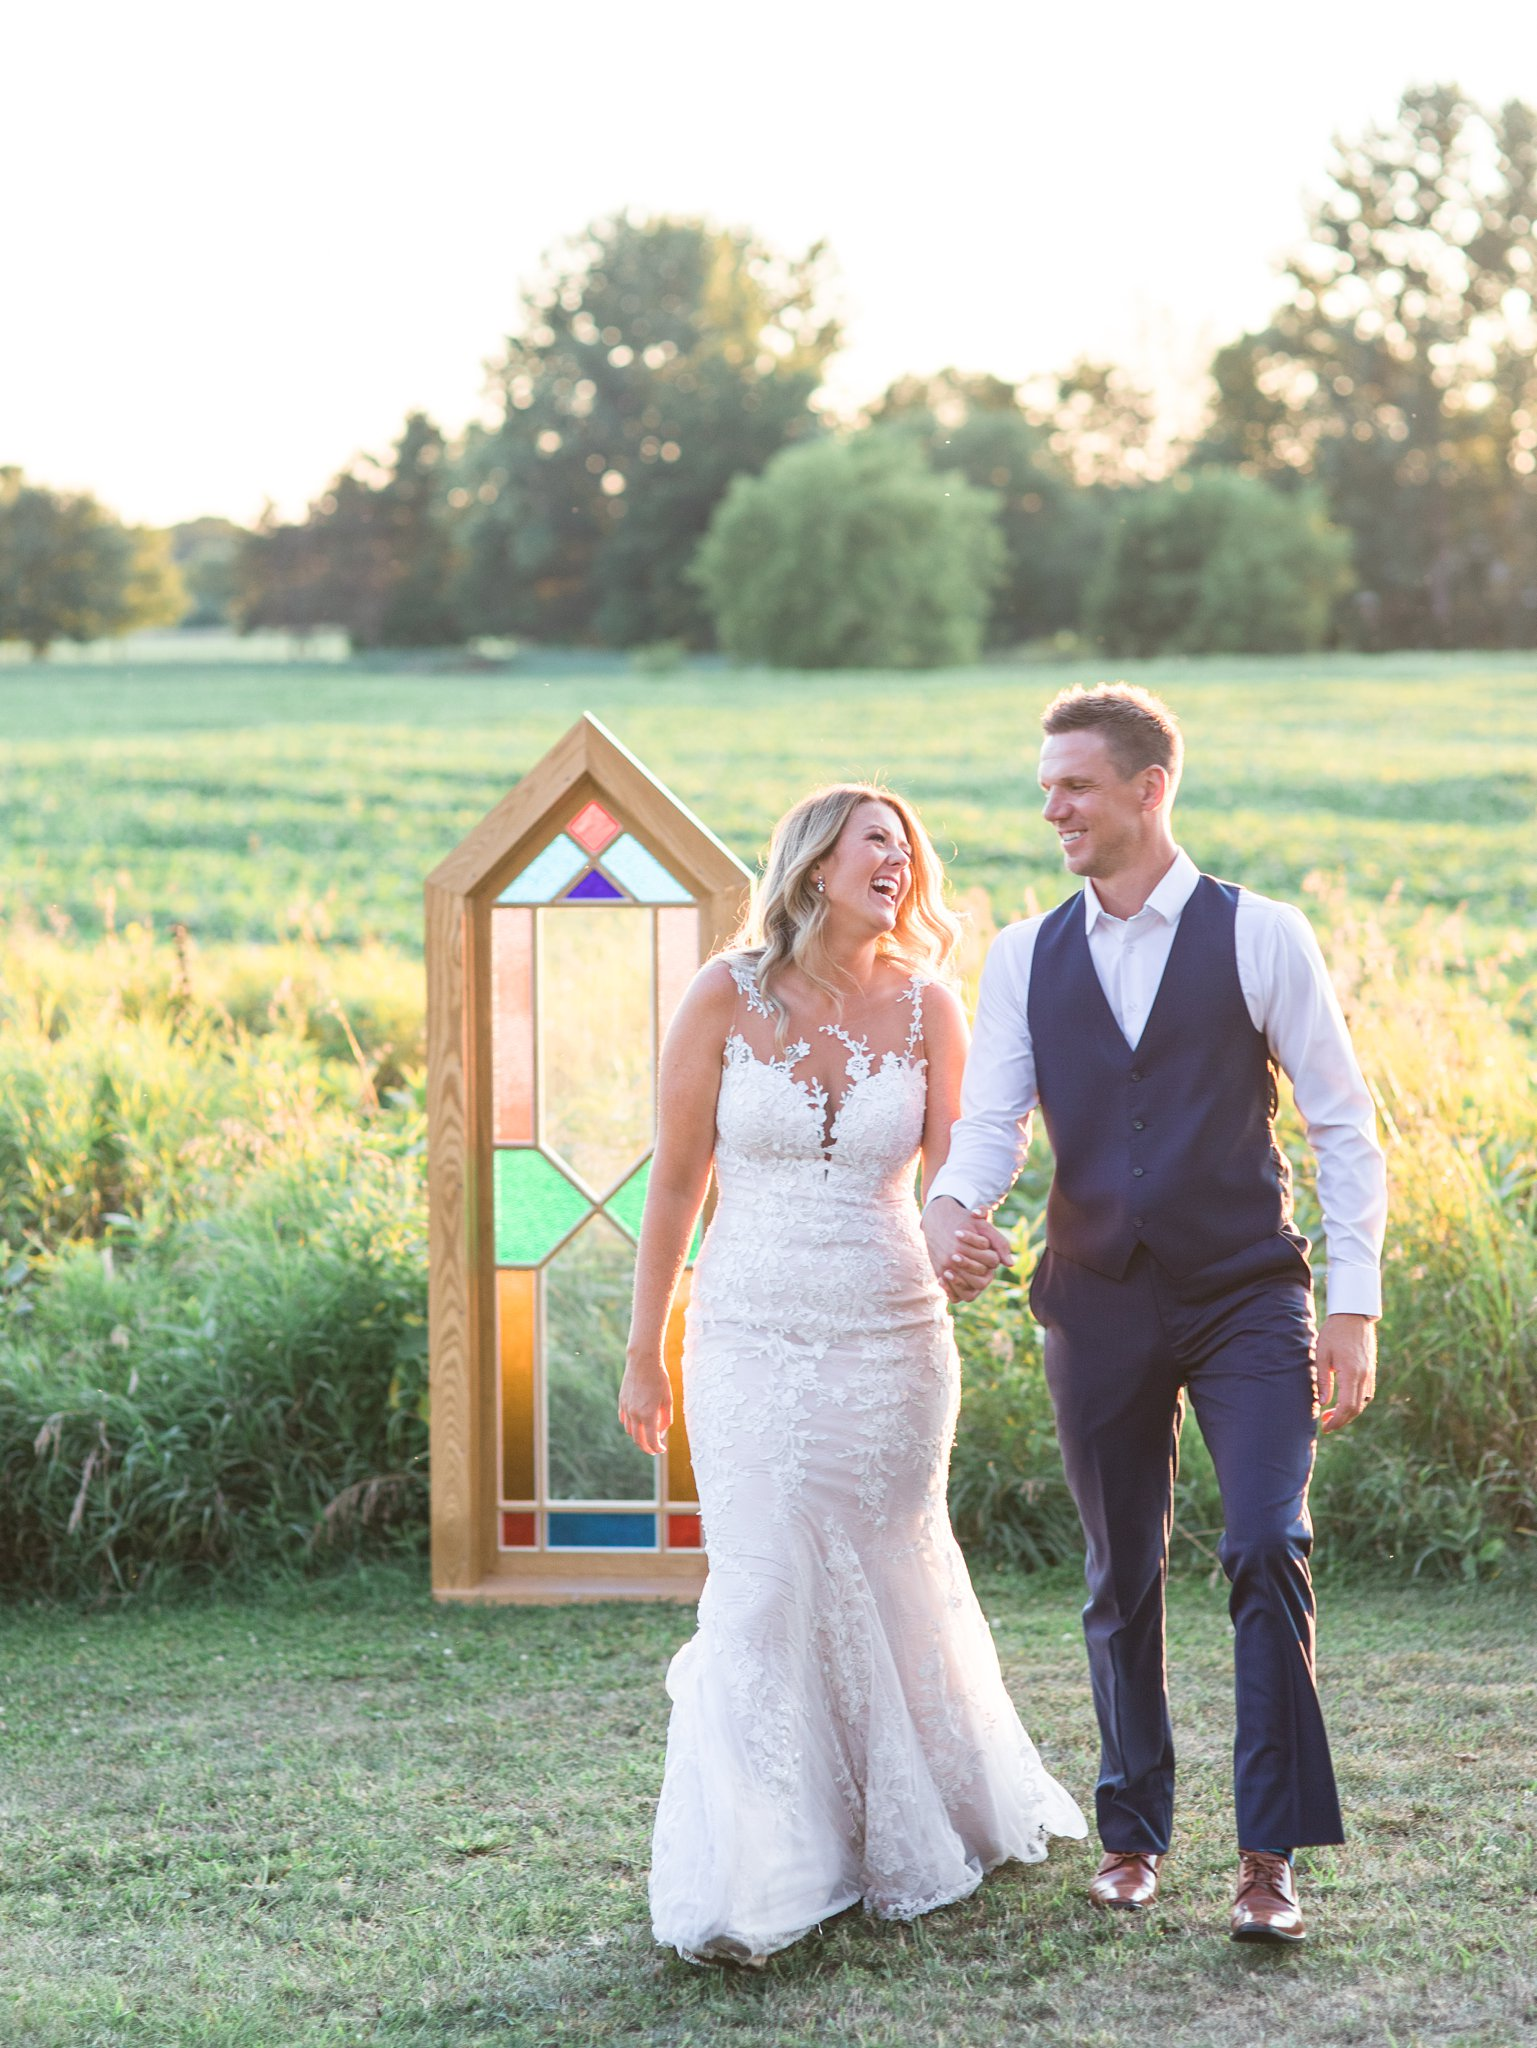 Sunset photos, stained glass, ceremony, golden hour, bride, groom, Private Estate Wedding Photos, Amy Pinder Photography